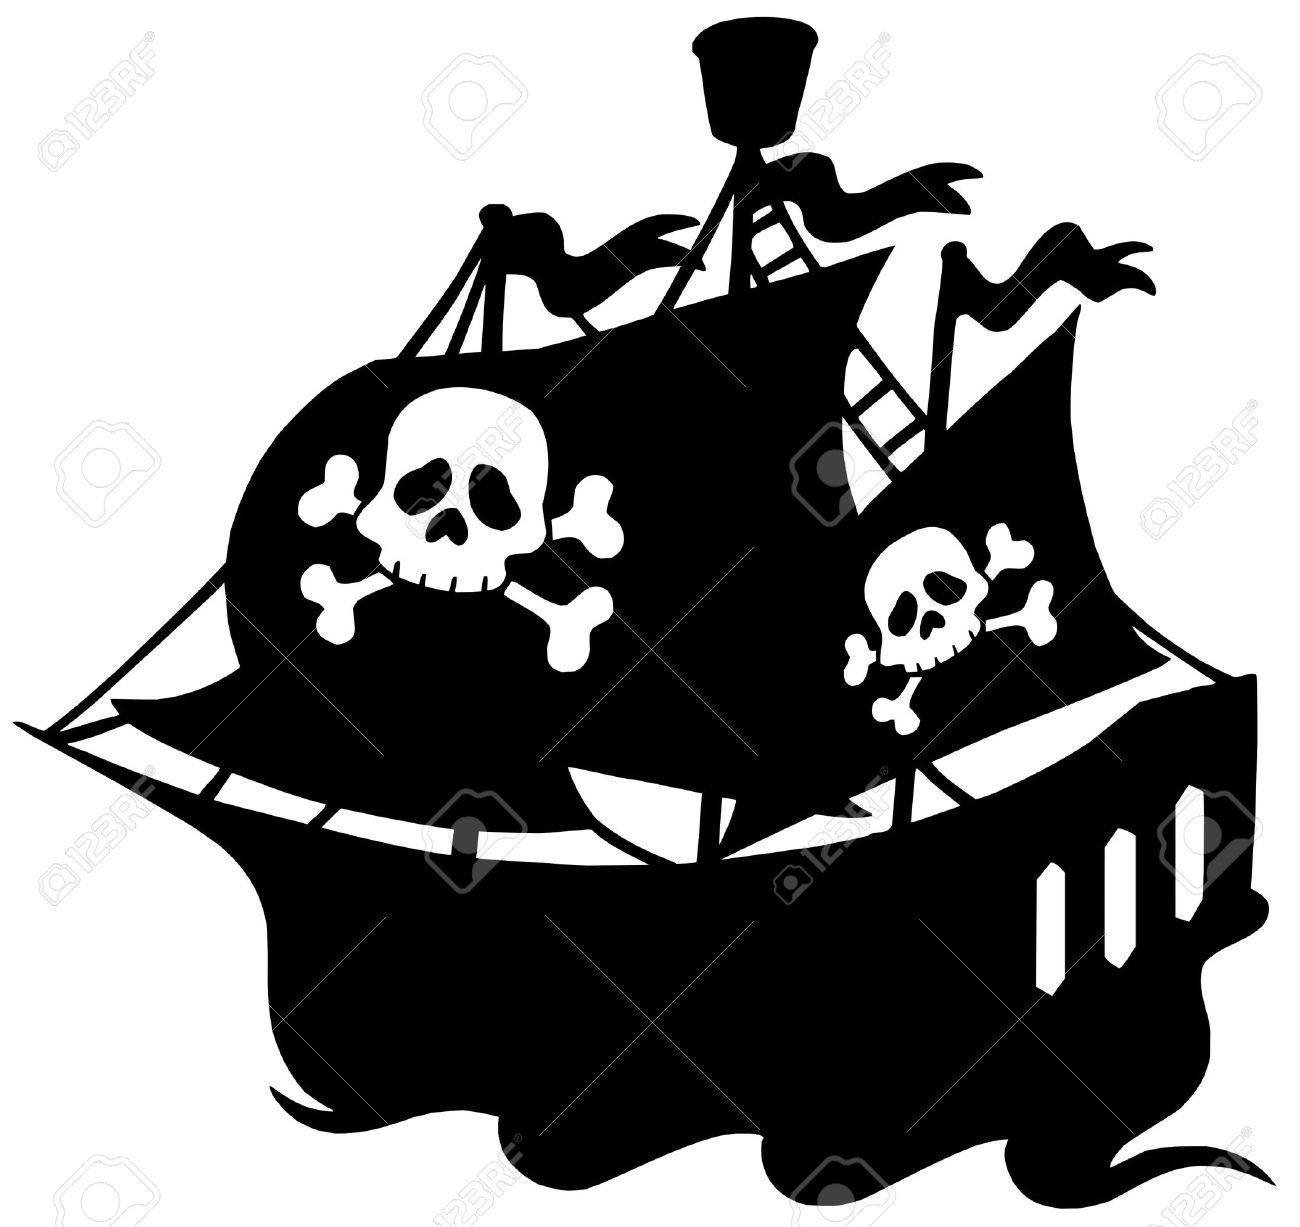 pirate ship drawings silhouette clip art Google Search